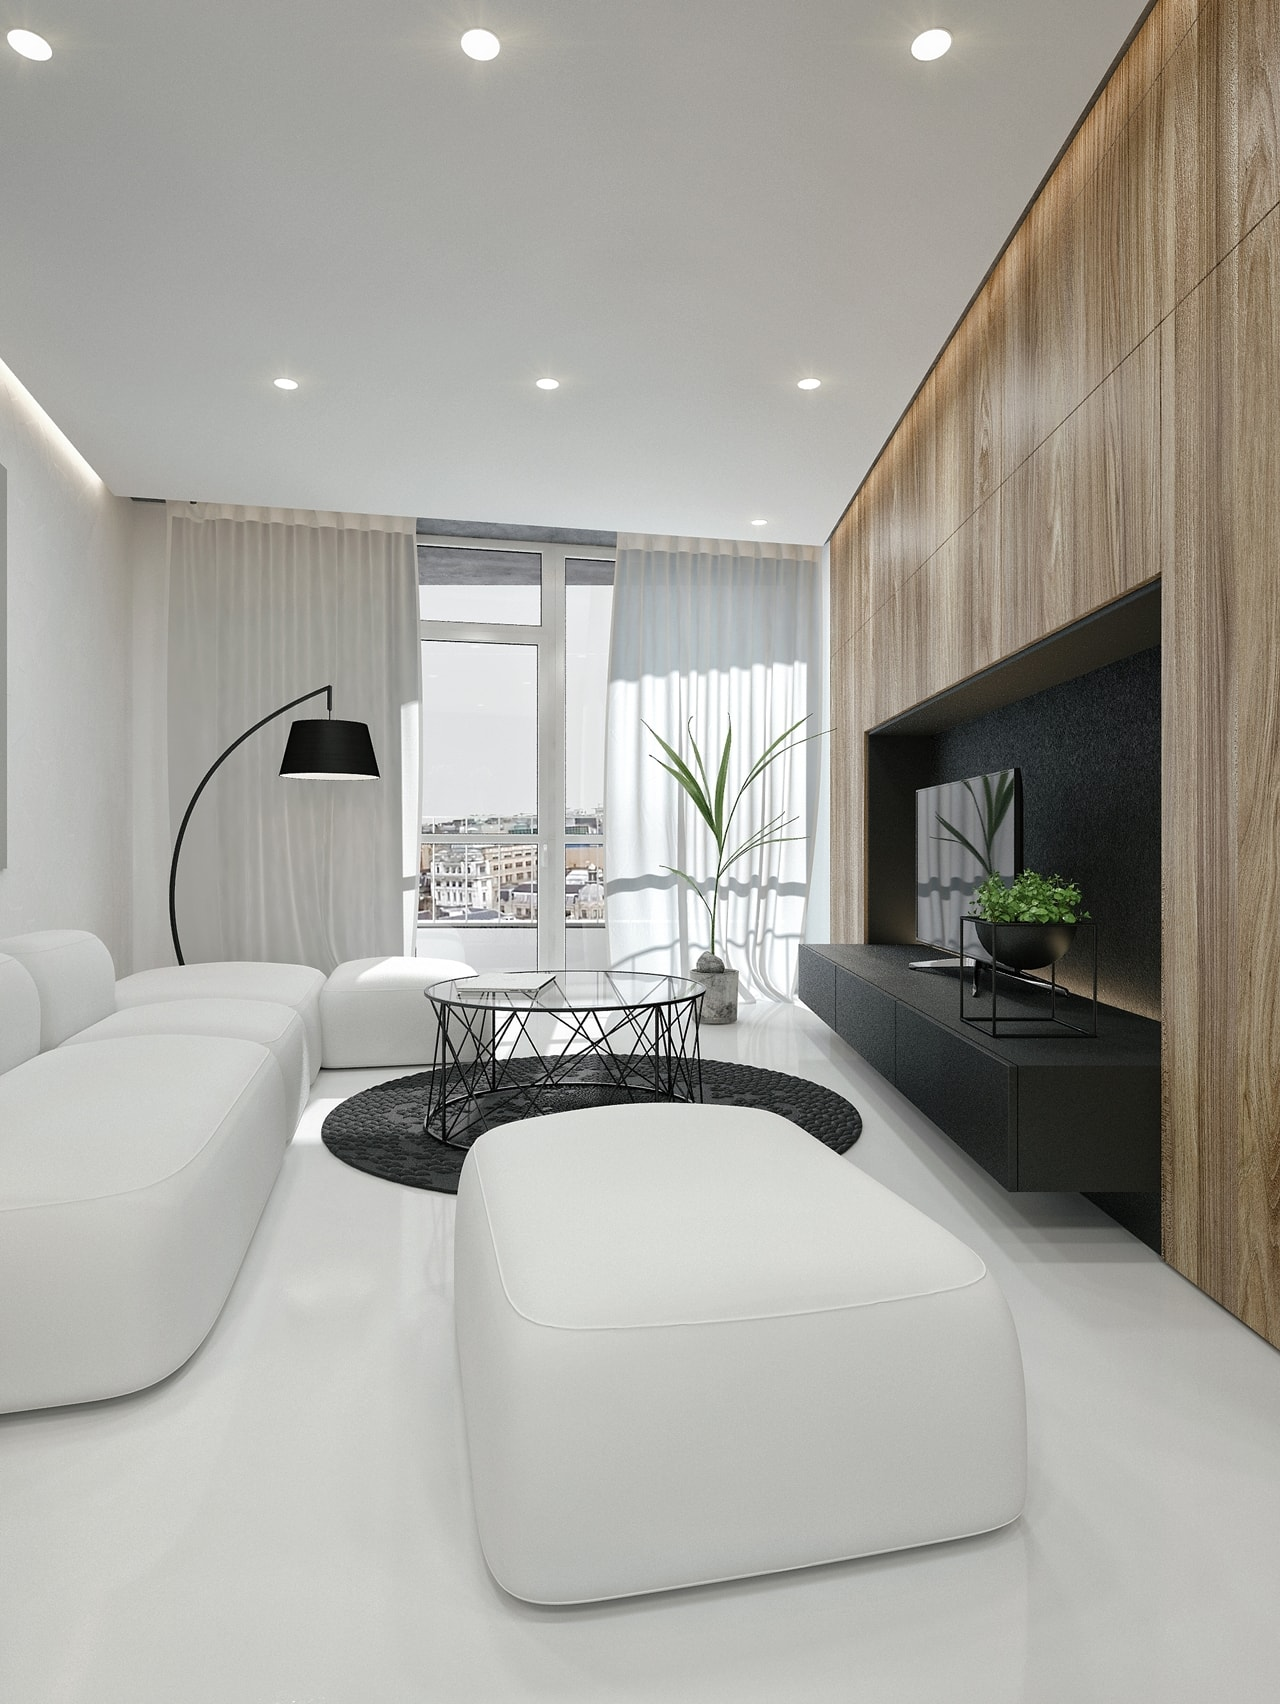 black and white interior design ideas: modern apartmentid